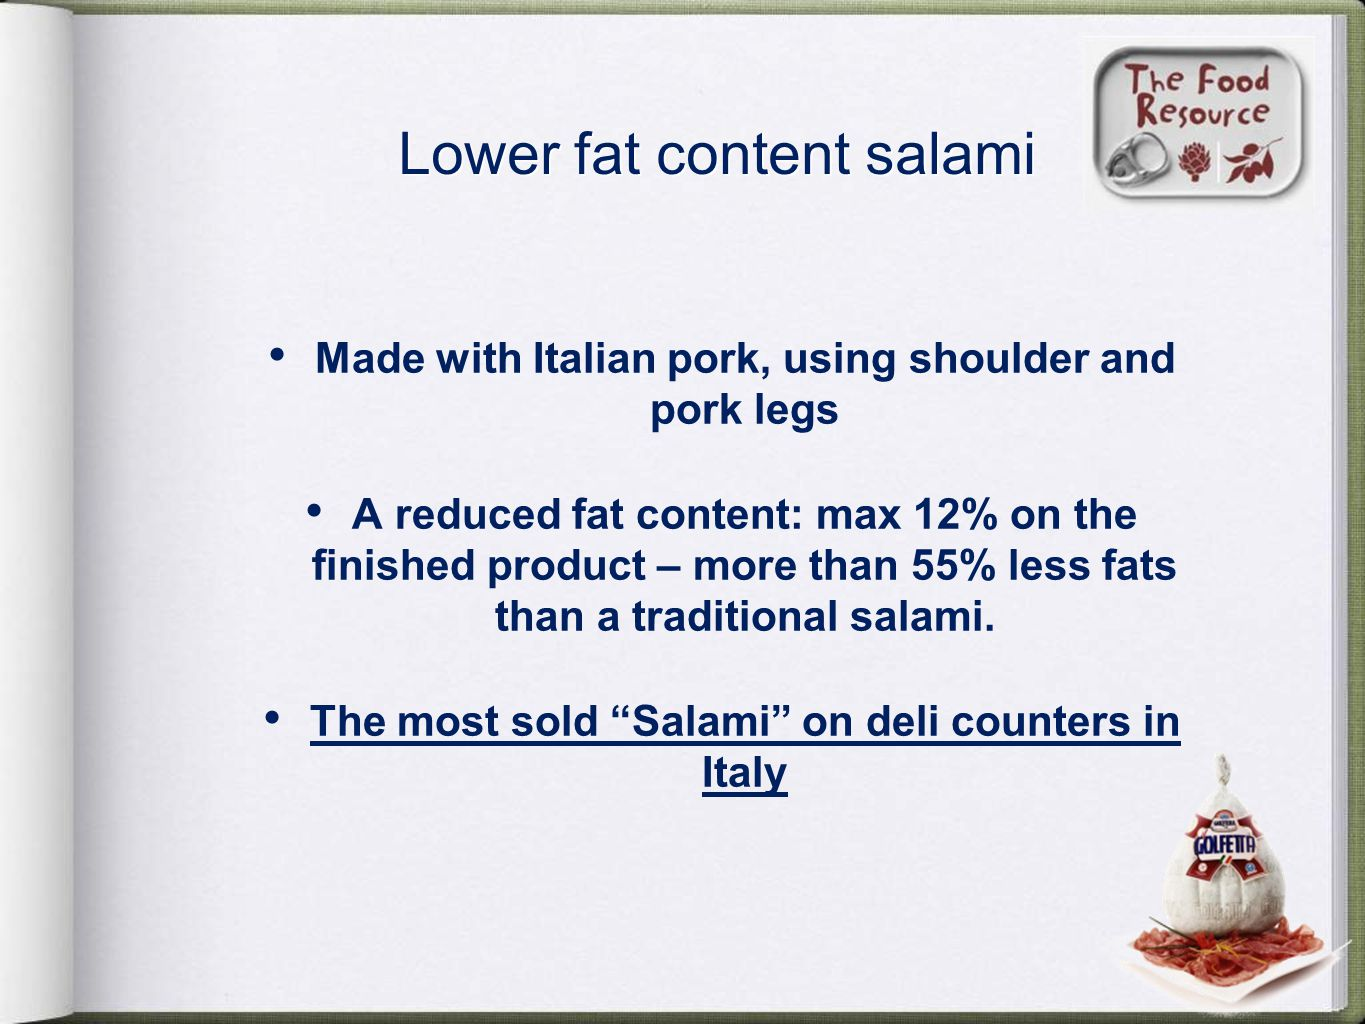 Lower fat content salami Made with Italian pork, using shoulder and pork legs A reduced fat content: max 12% on the finished product – more than 55% less fats than a traditional salami.